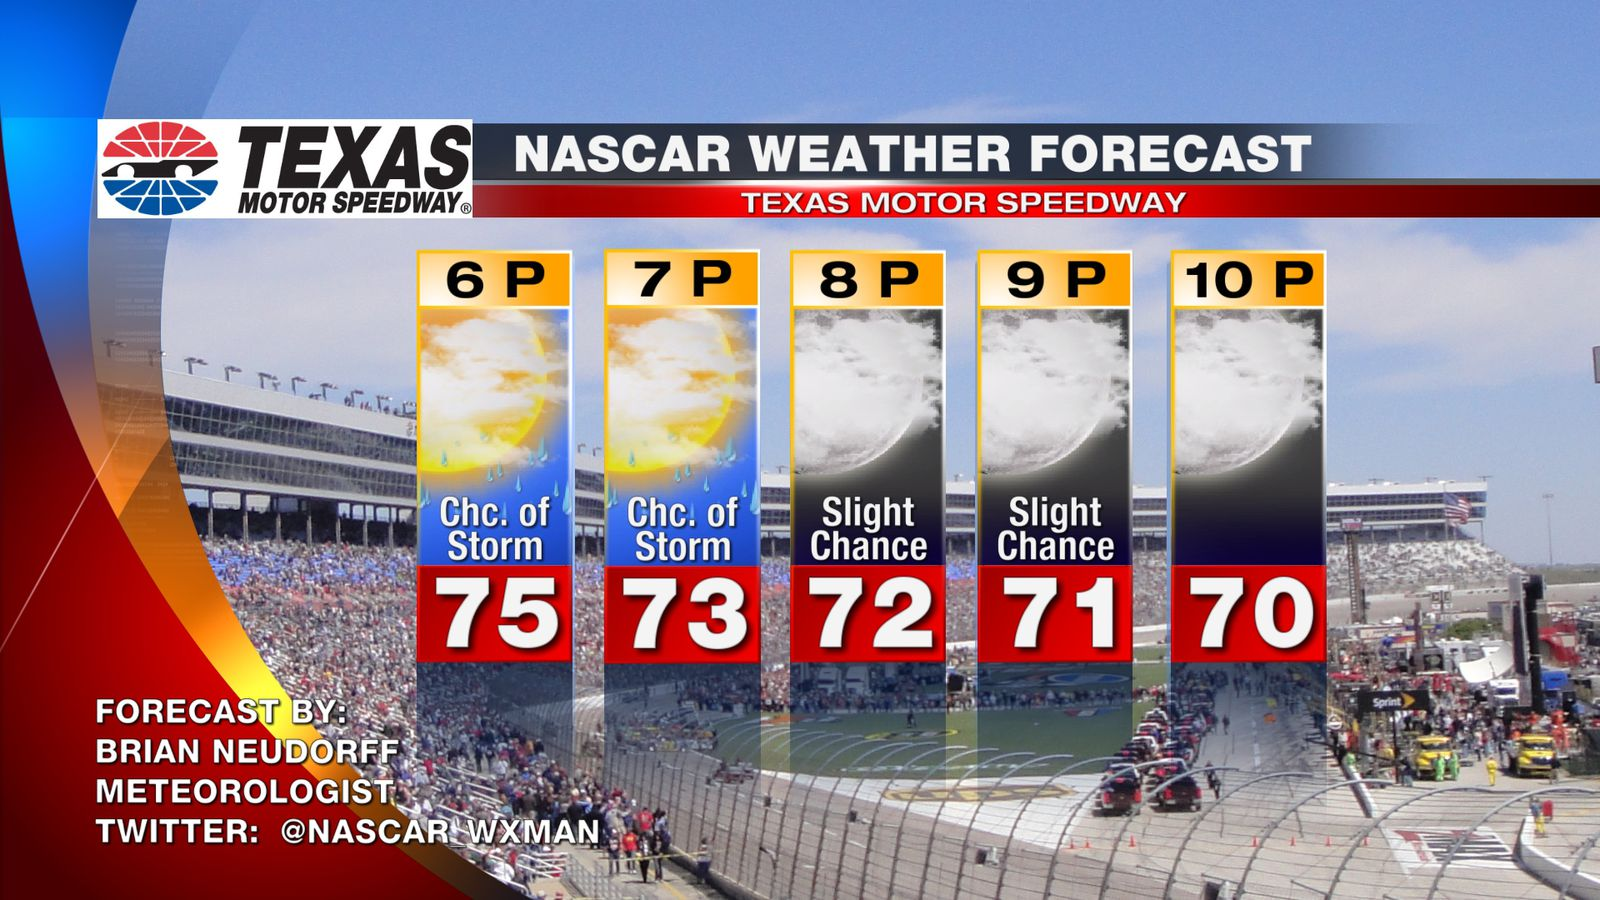 2015 nascar at texas motor speedway race day weather for Texas motor speedway 2015 schedule